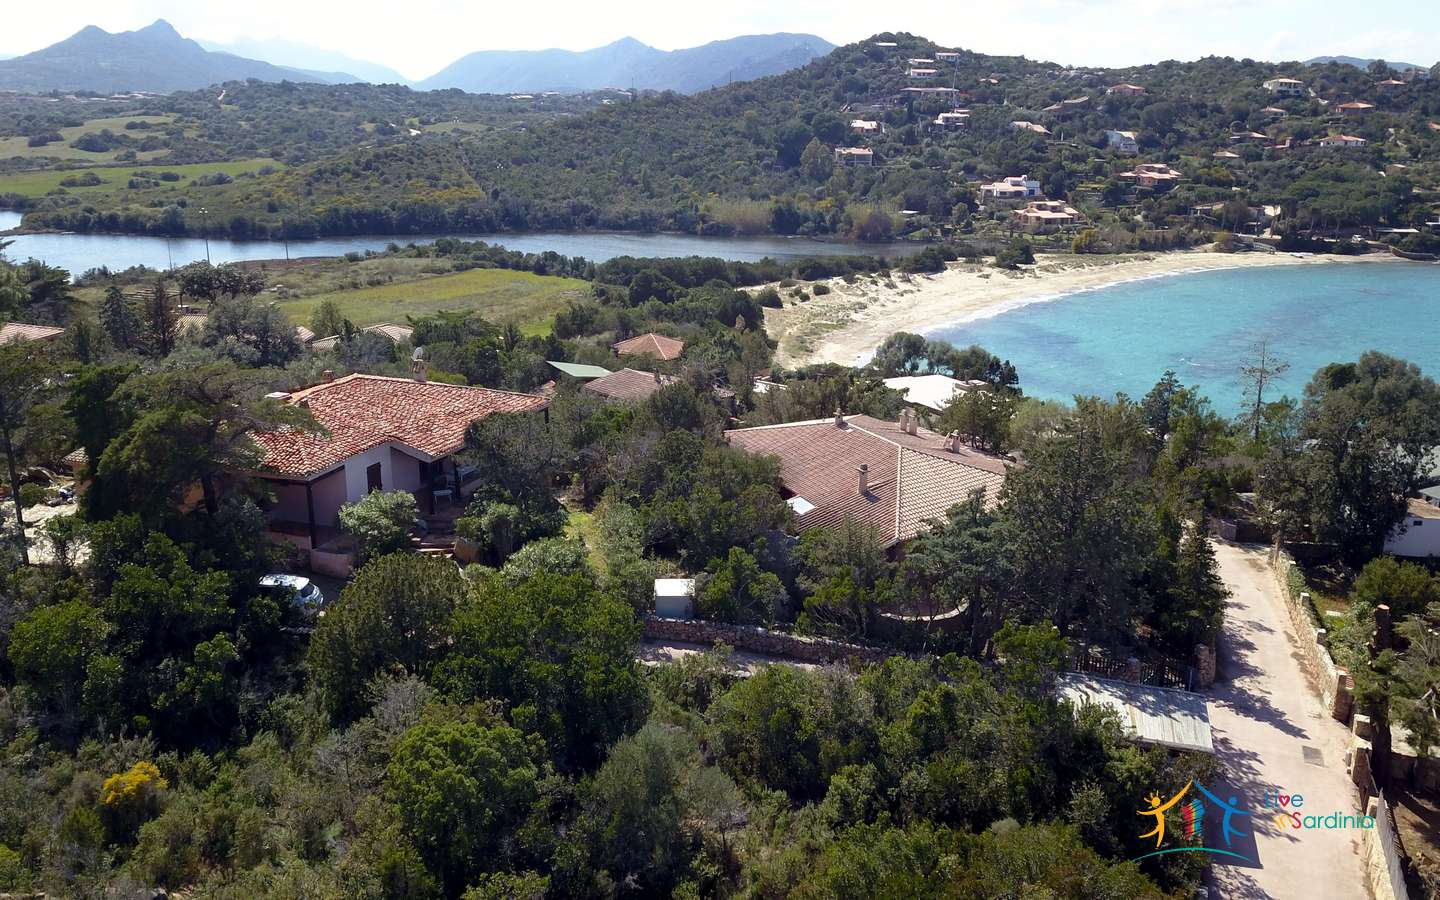 Sea View Villa For Sale In San Teodoro Sardinia